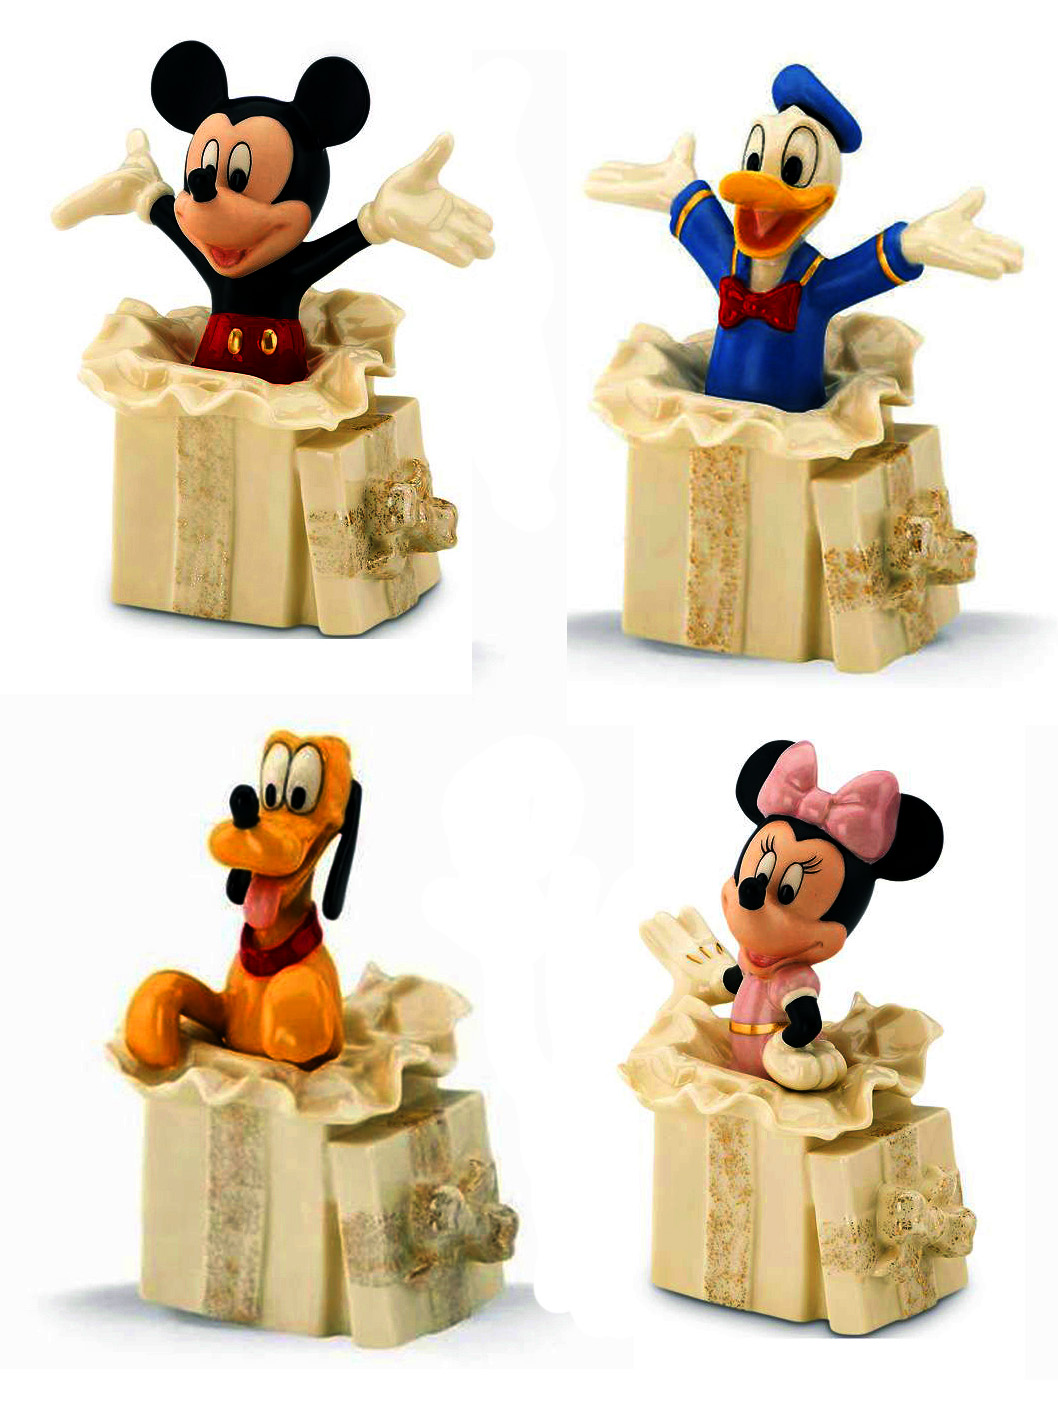 Mickey Mouse, Donald Duck, Pluto and Minnie Mouse burst our of gift boxes